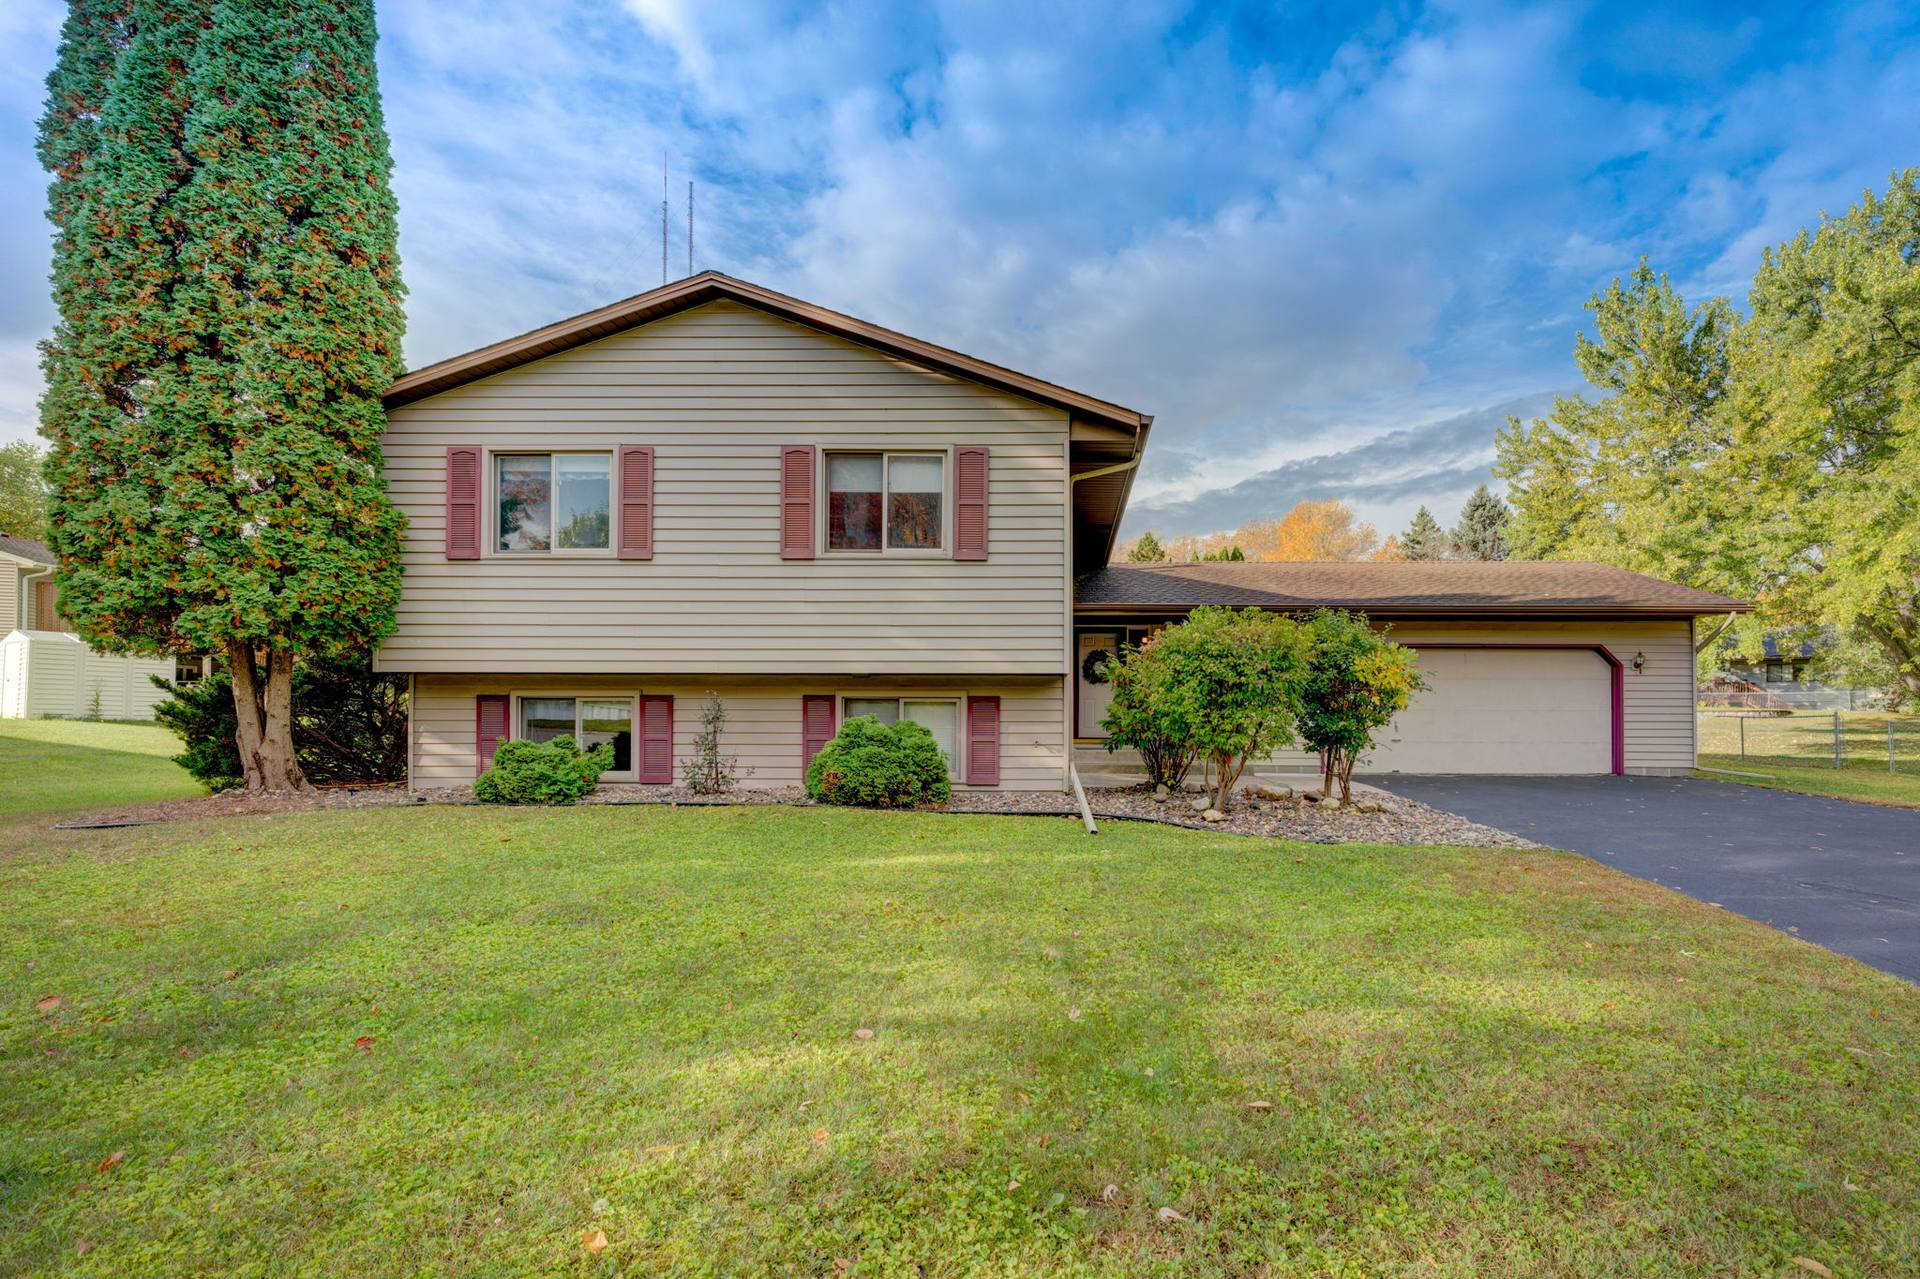 863 Westview Dr, Shoreview, MN 55126, US